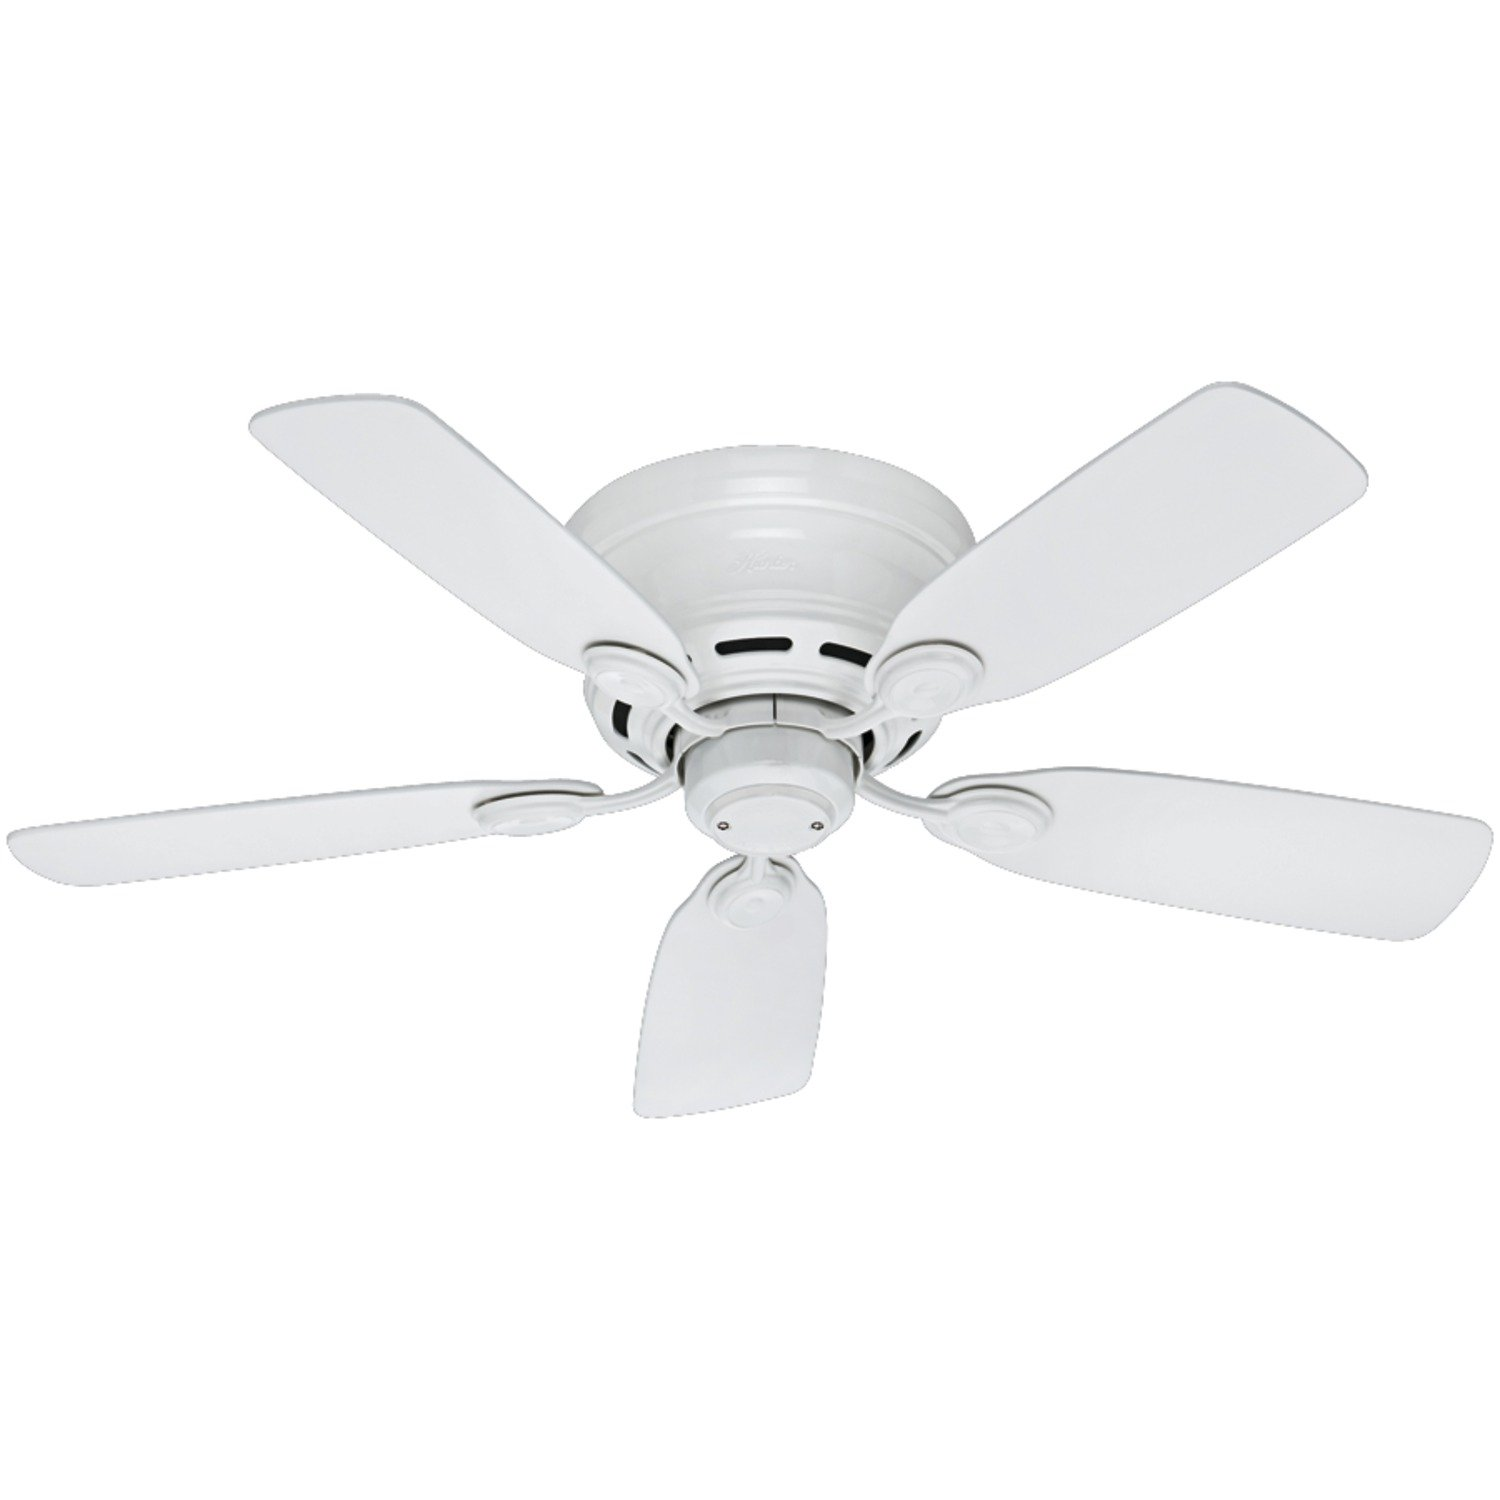 living ceiling choice remote control room designers collection regarding breathtaking fan your design white for fans ceilings moderno inch house in with